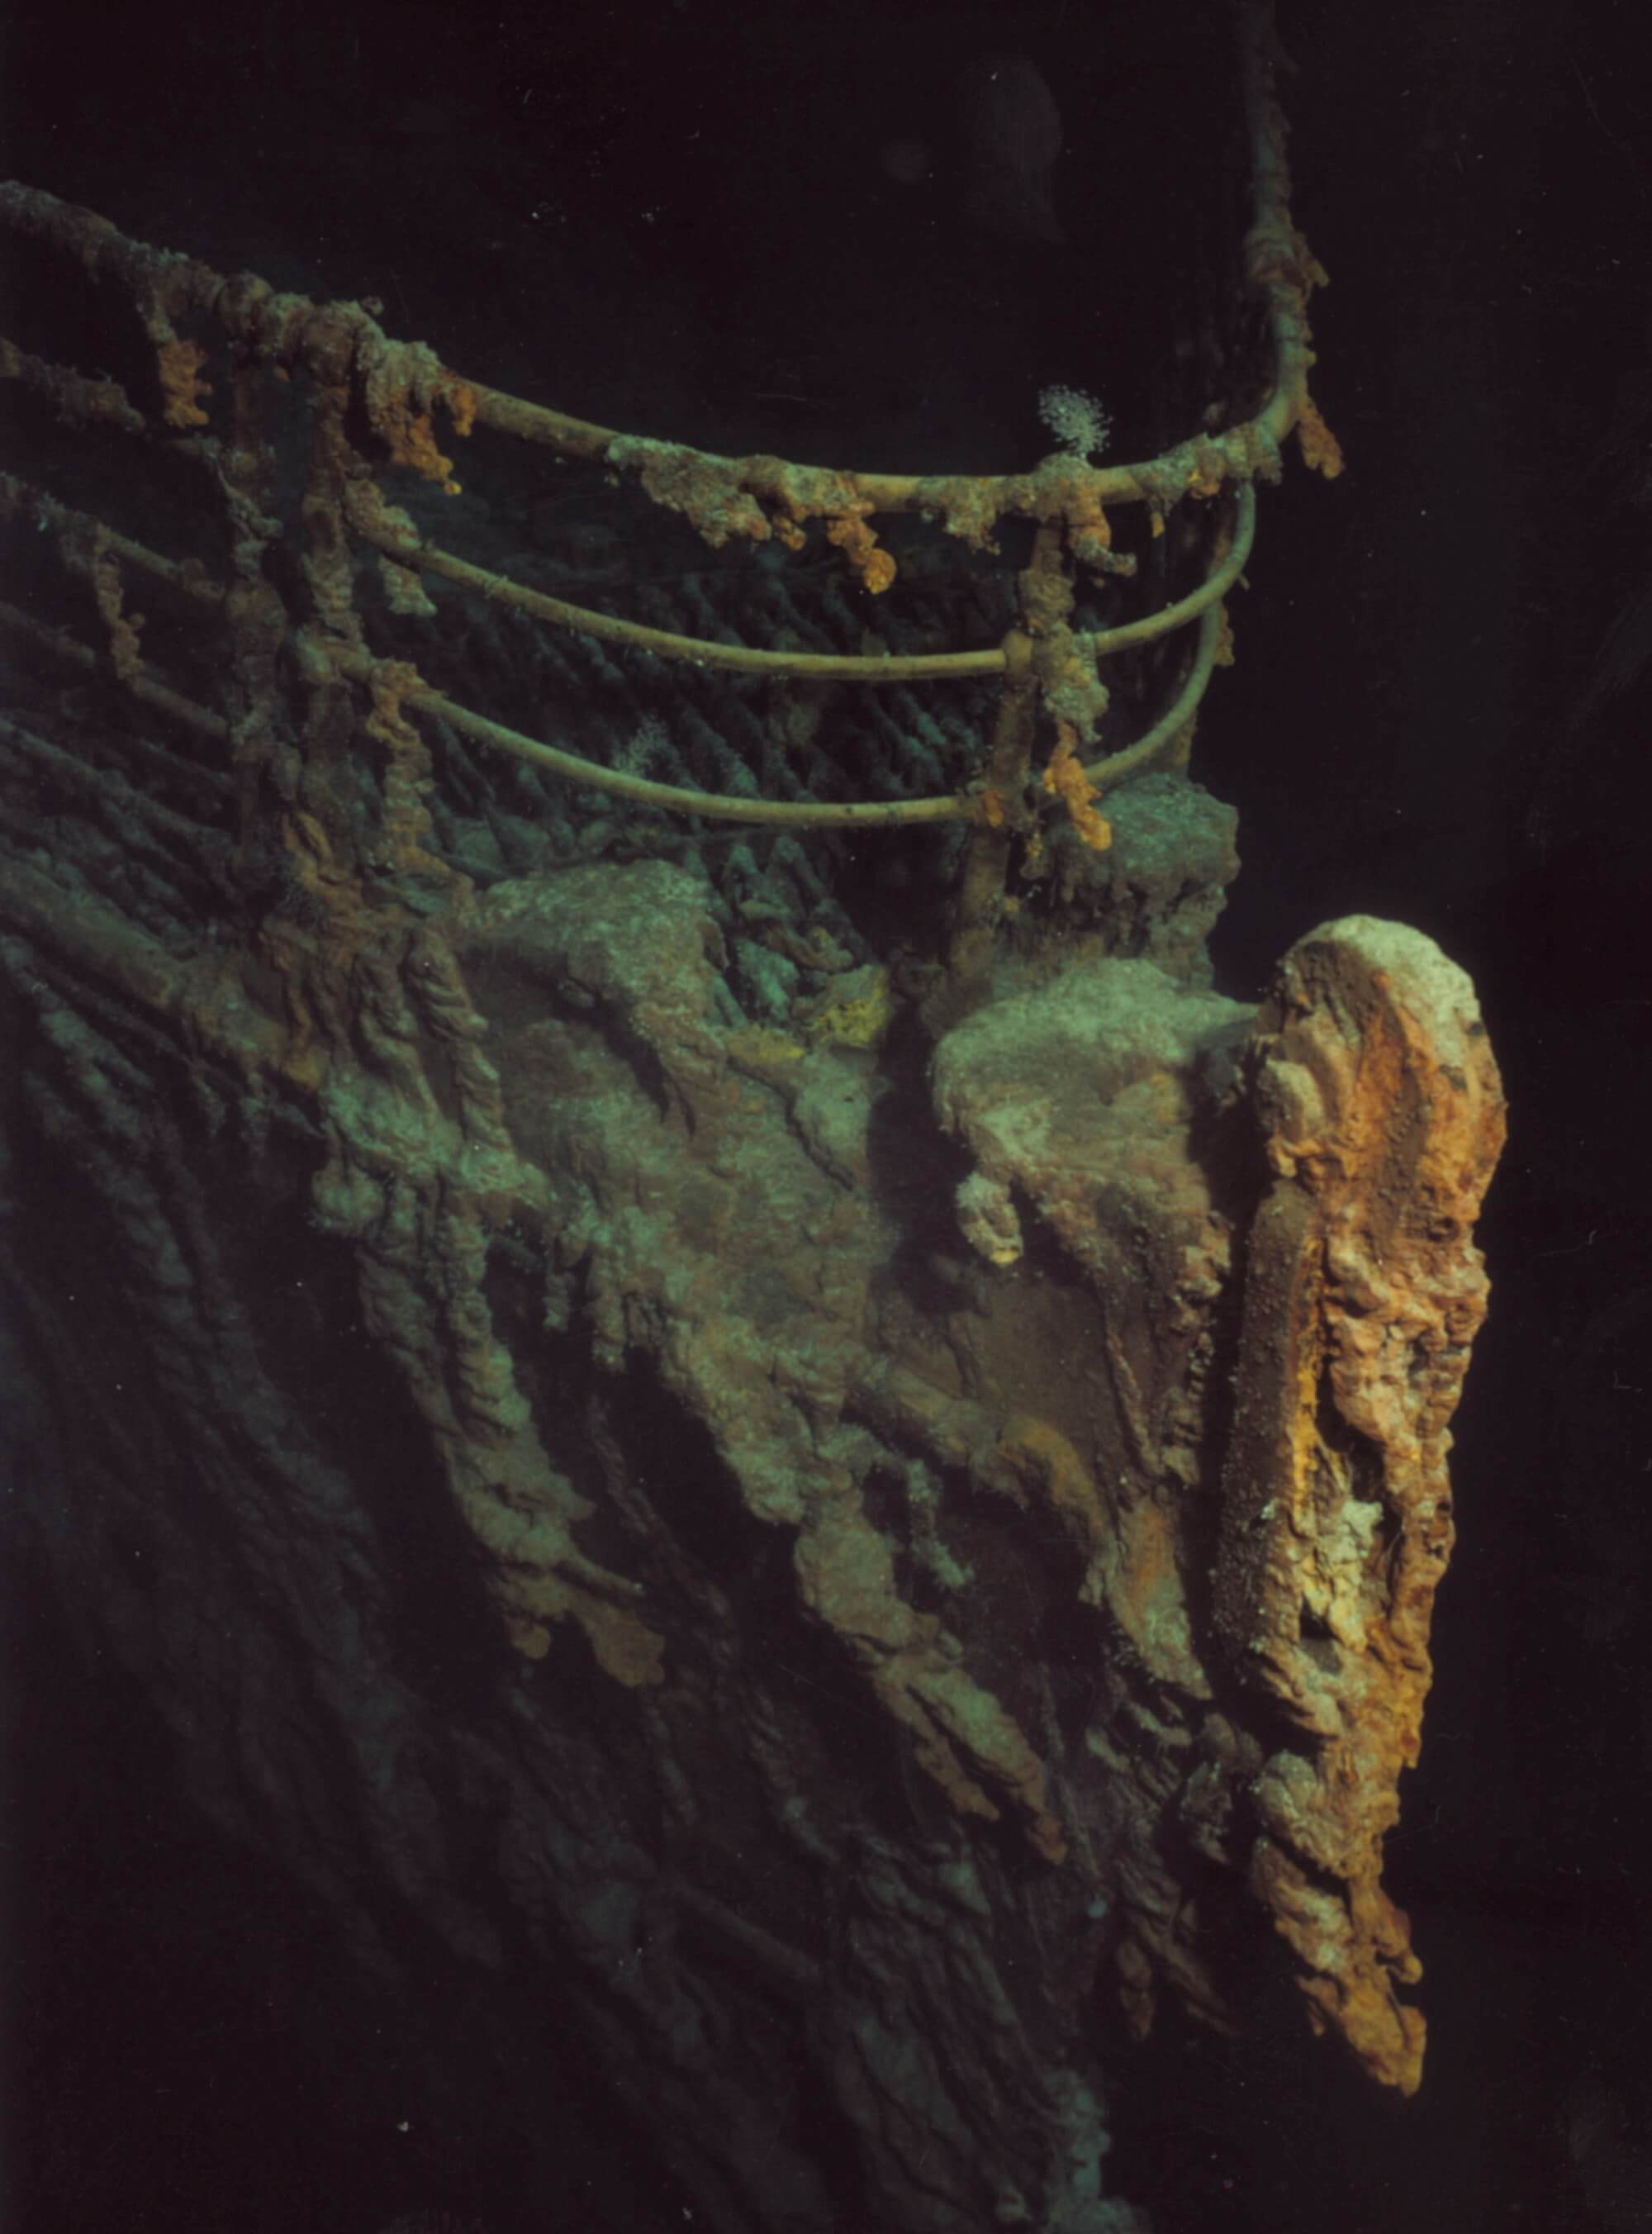 Sunken bow of ship, covered in rust and barnacles